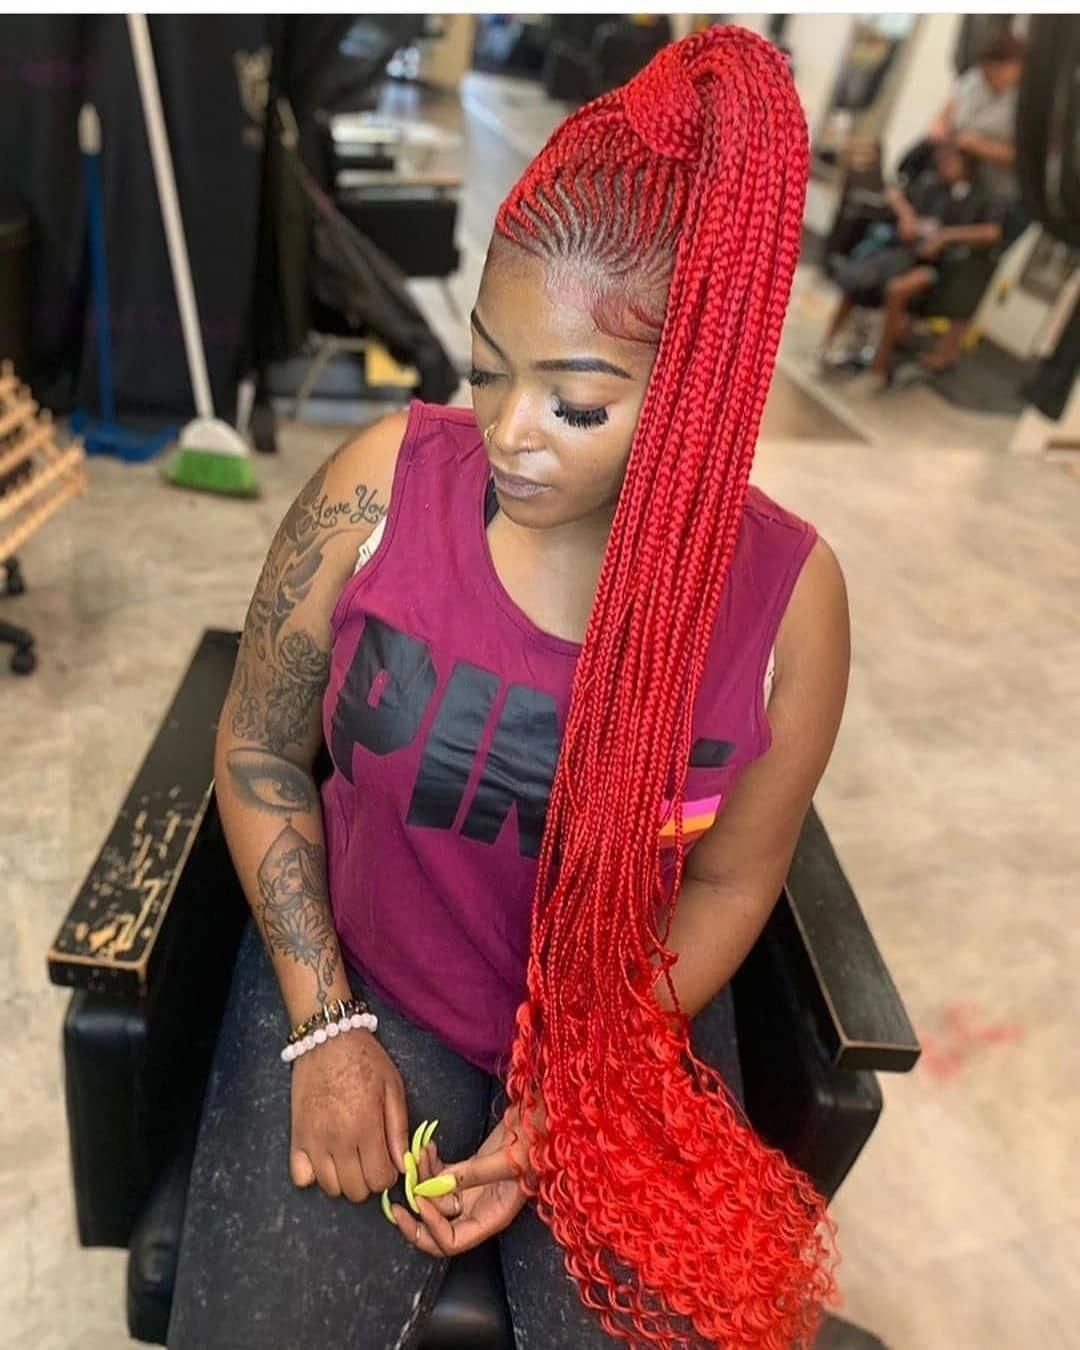 Excellent Hairstyle Ideas For Black Women Of African American Ethnicity Braids Braided Afro Hairstyles Braided Hairstyles Natural Hair Styles For Black Women